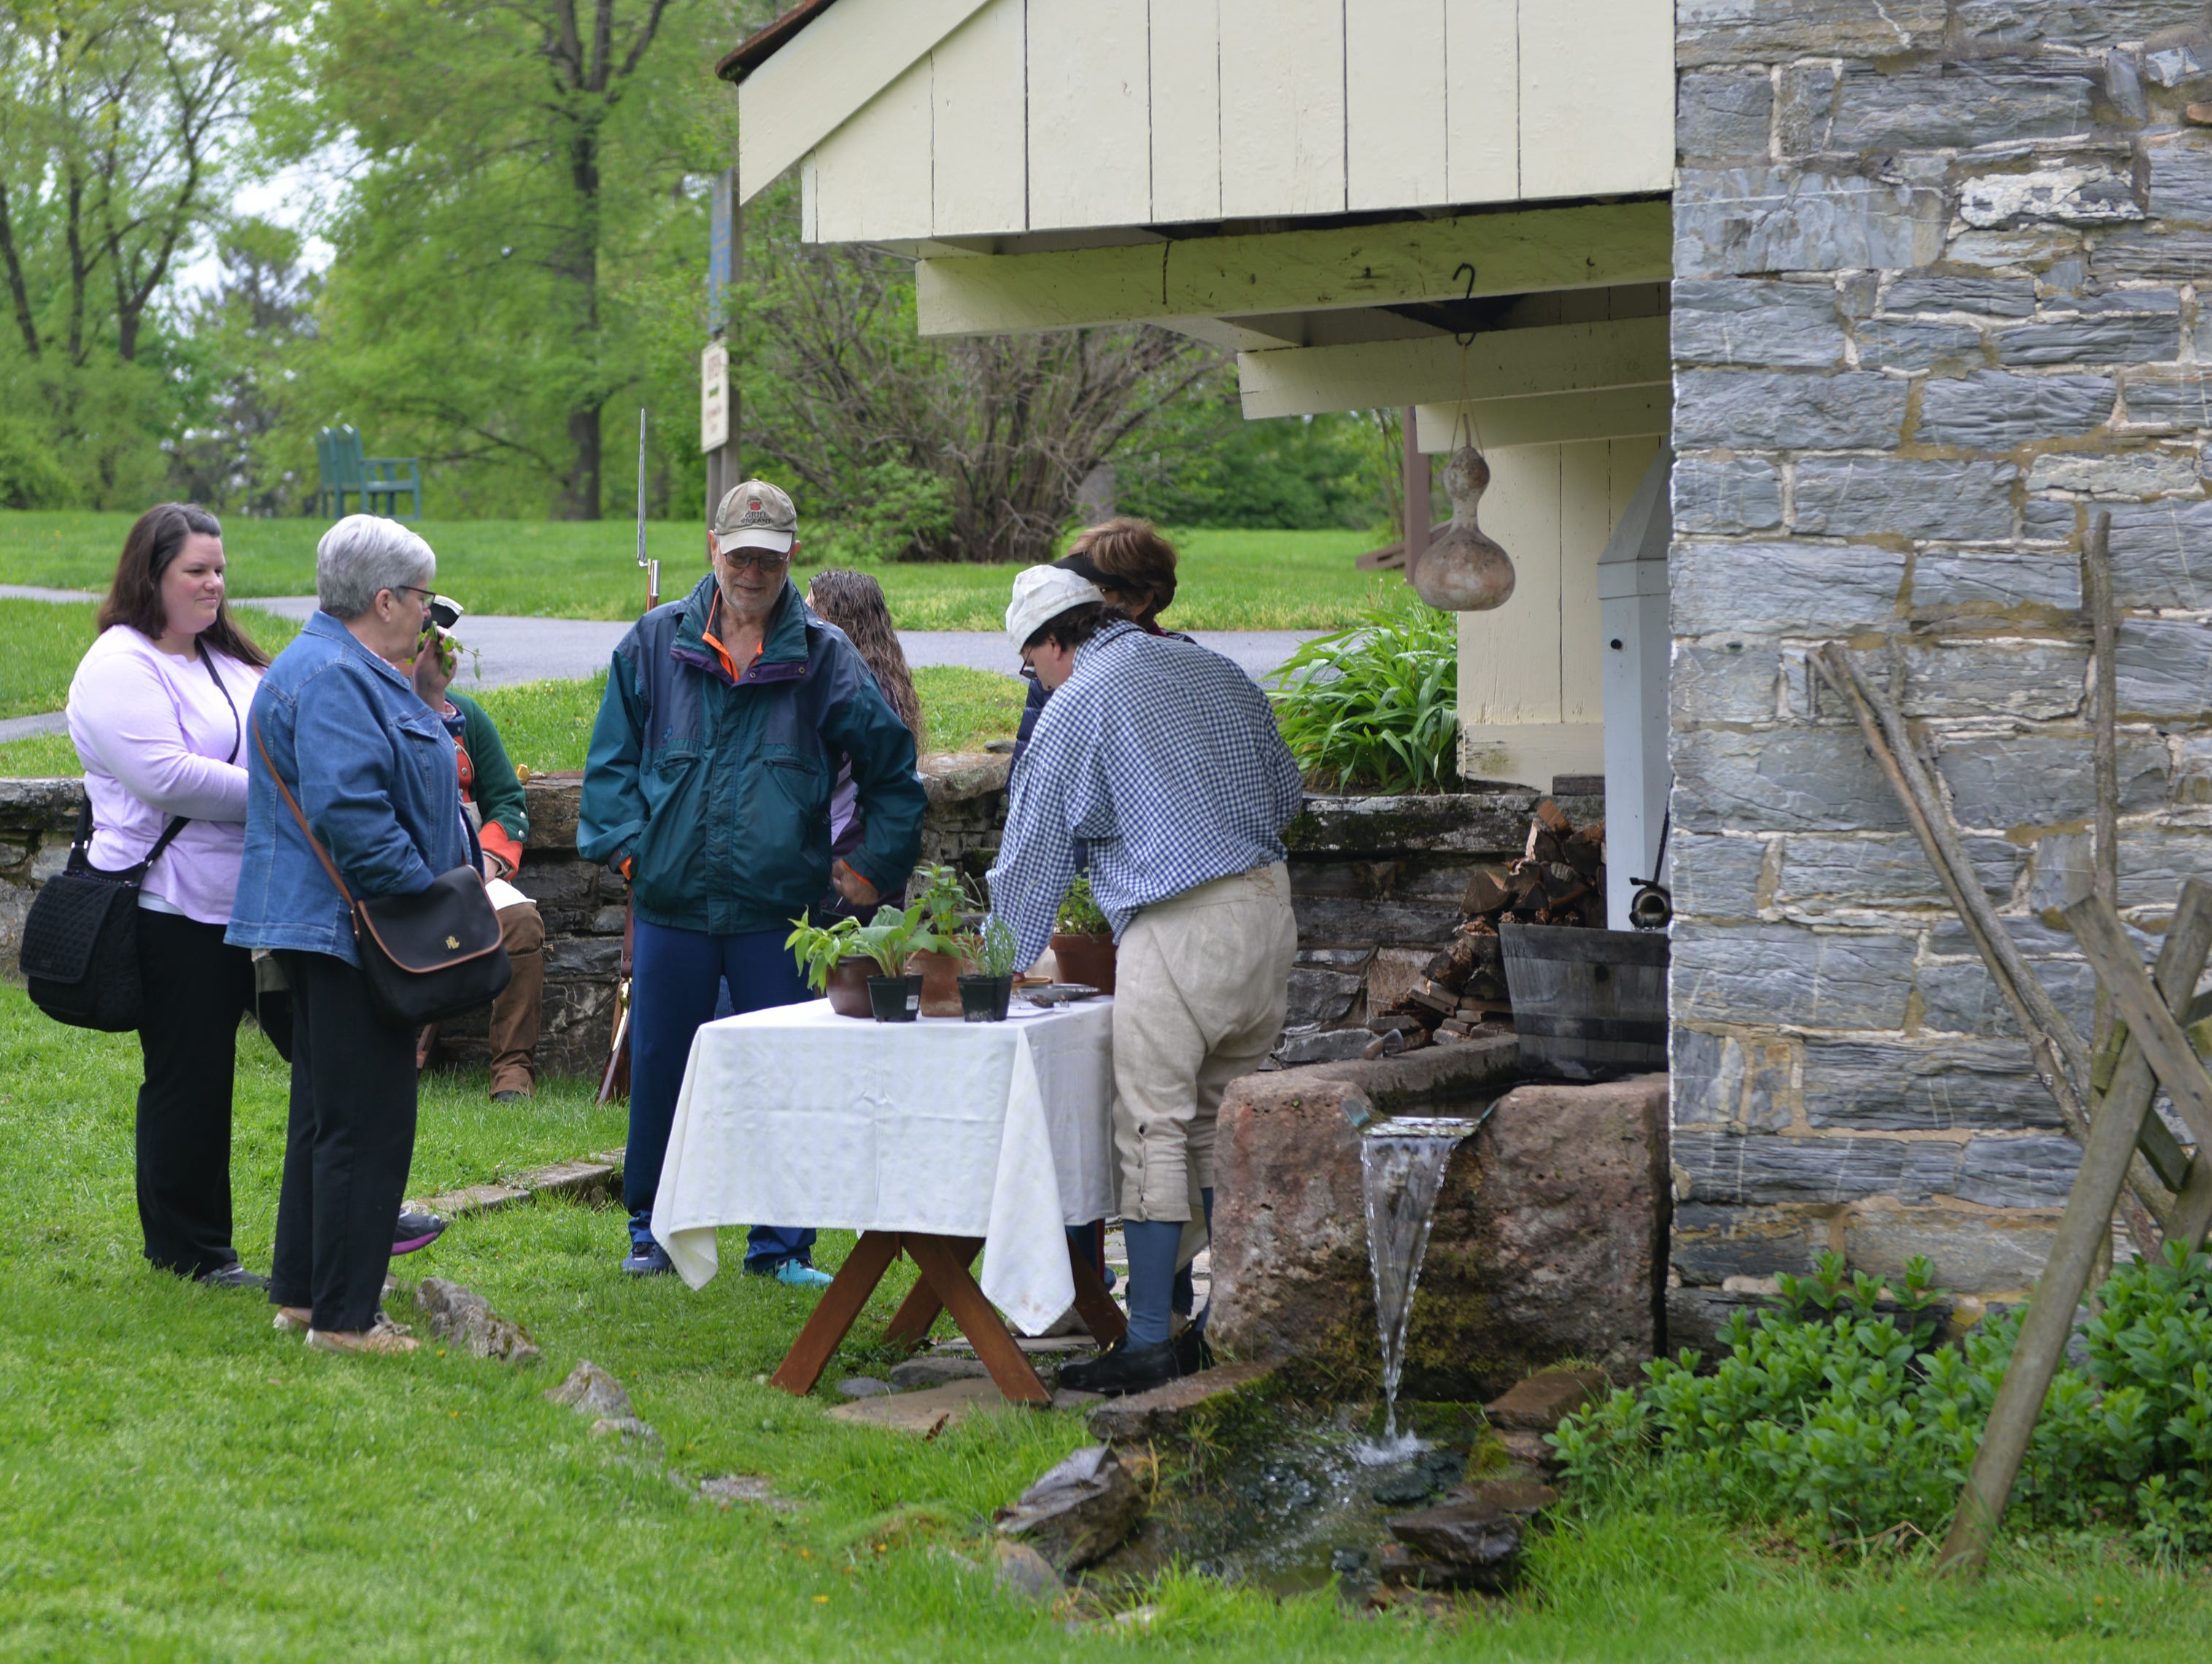 Next to the springhouse Dave Sonnen invited visitors to touch and smell the fragrant herbs grown in the Homestead garden during 'Making Sense of History' held at The Conrad Weiser Homestead at Womelsdorf, Pa on Sunday, April 28, 2019.